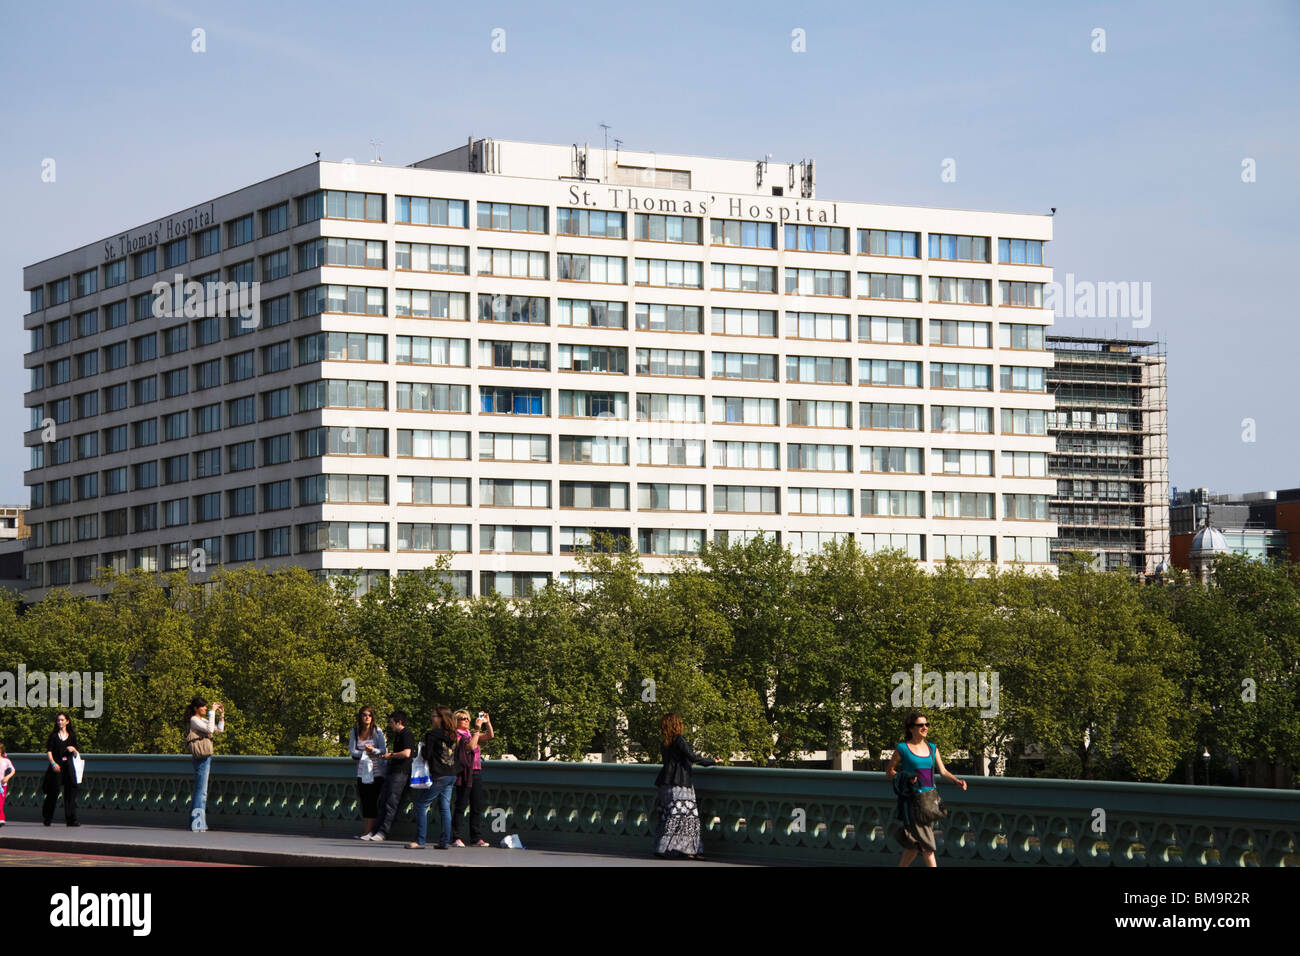 St Thomas Hospital, London, England - Stock Image